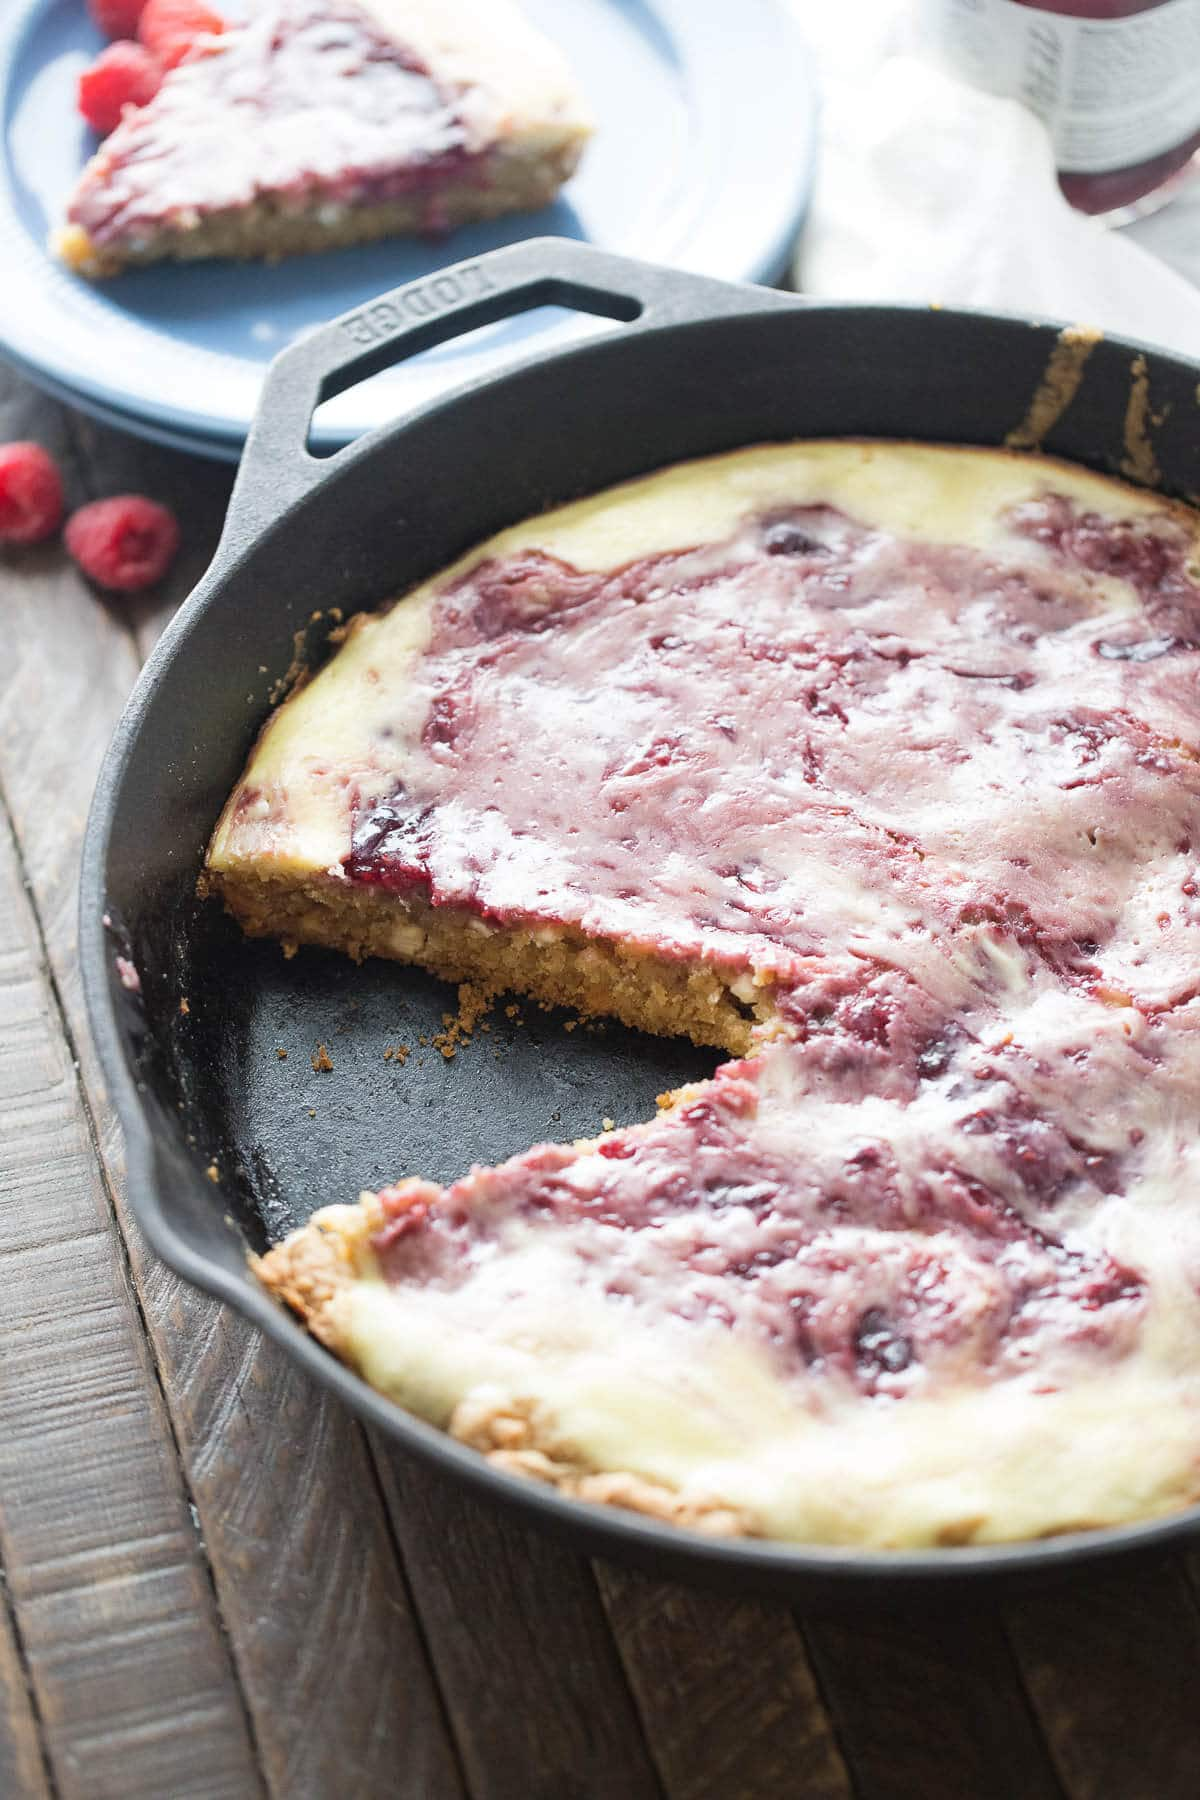 This raspberry amaretto cheesecake blondie is simple to prepare! Plus, between the blondie and the creamy cheesecake layer this is like two desserts in one!